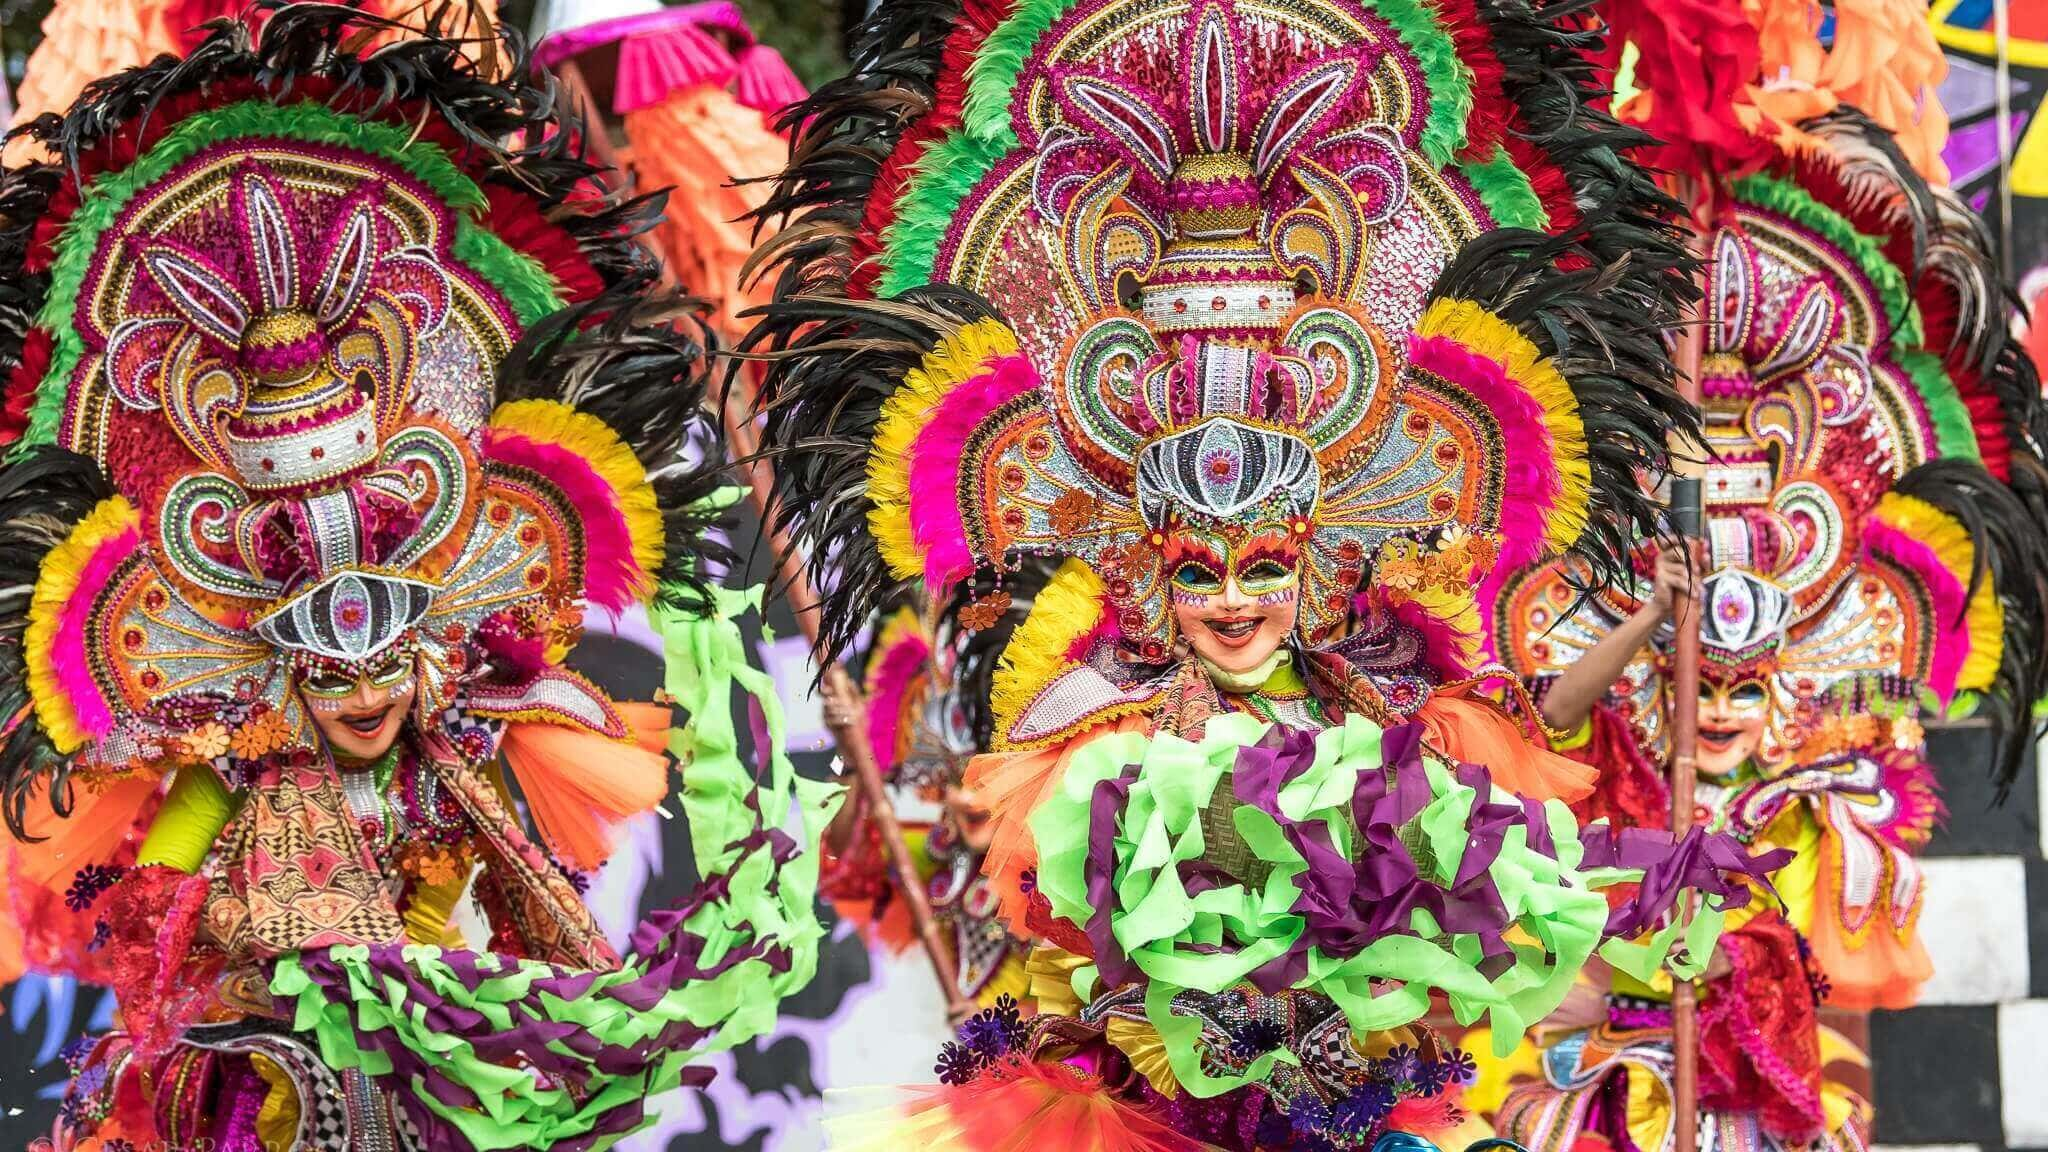 People wearing colorful costumes while parading on the street, Festival. street dancing